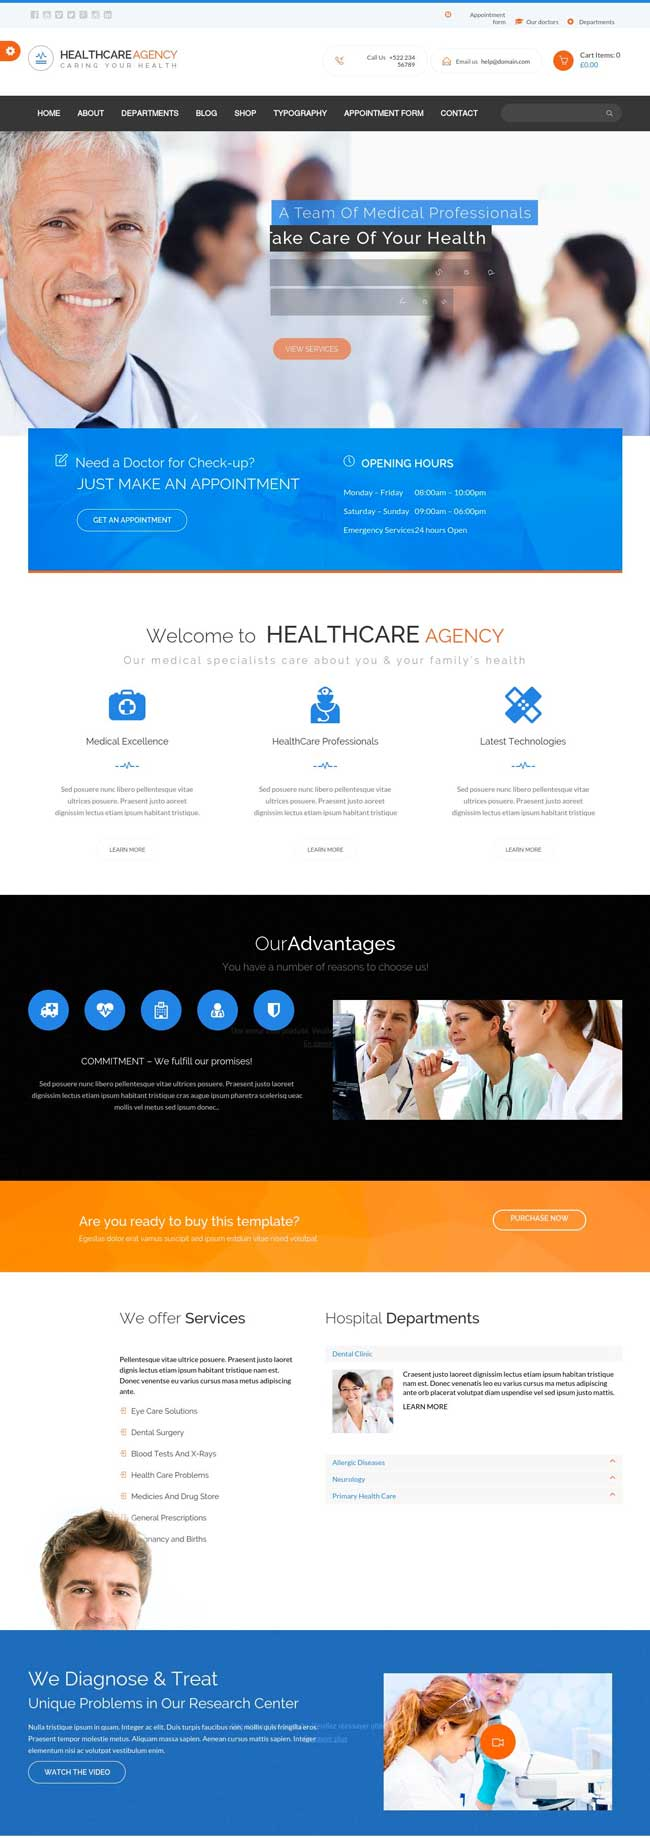 Healthcare-Agency-Health-Medical-WordPress